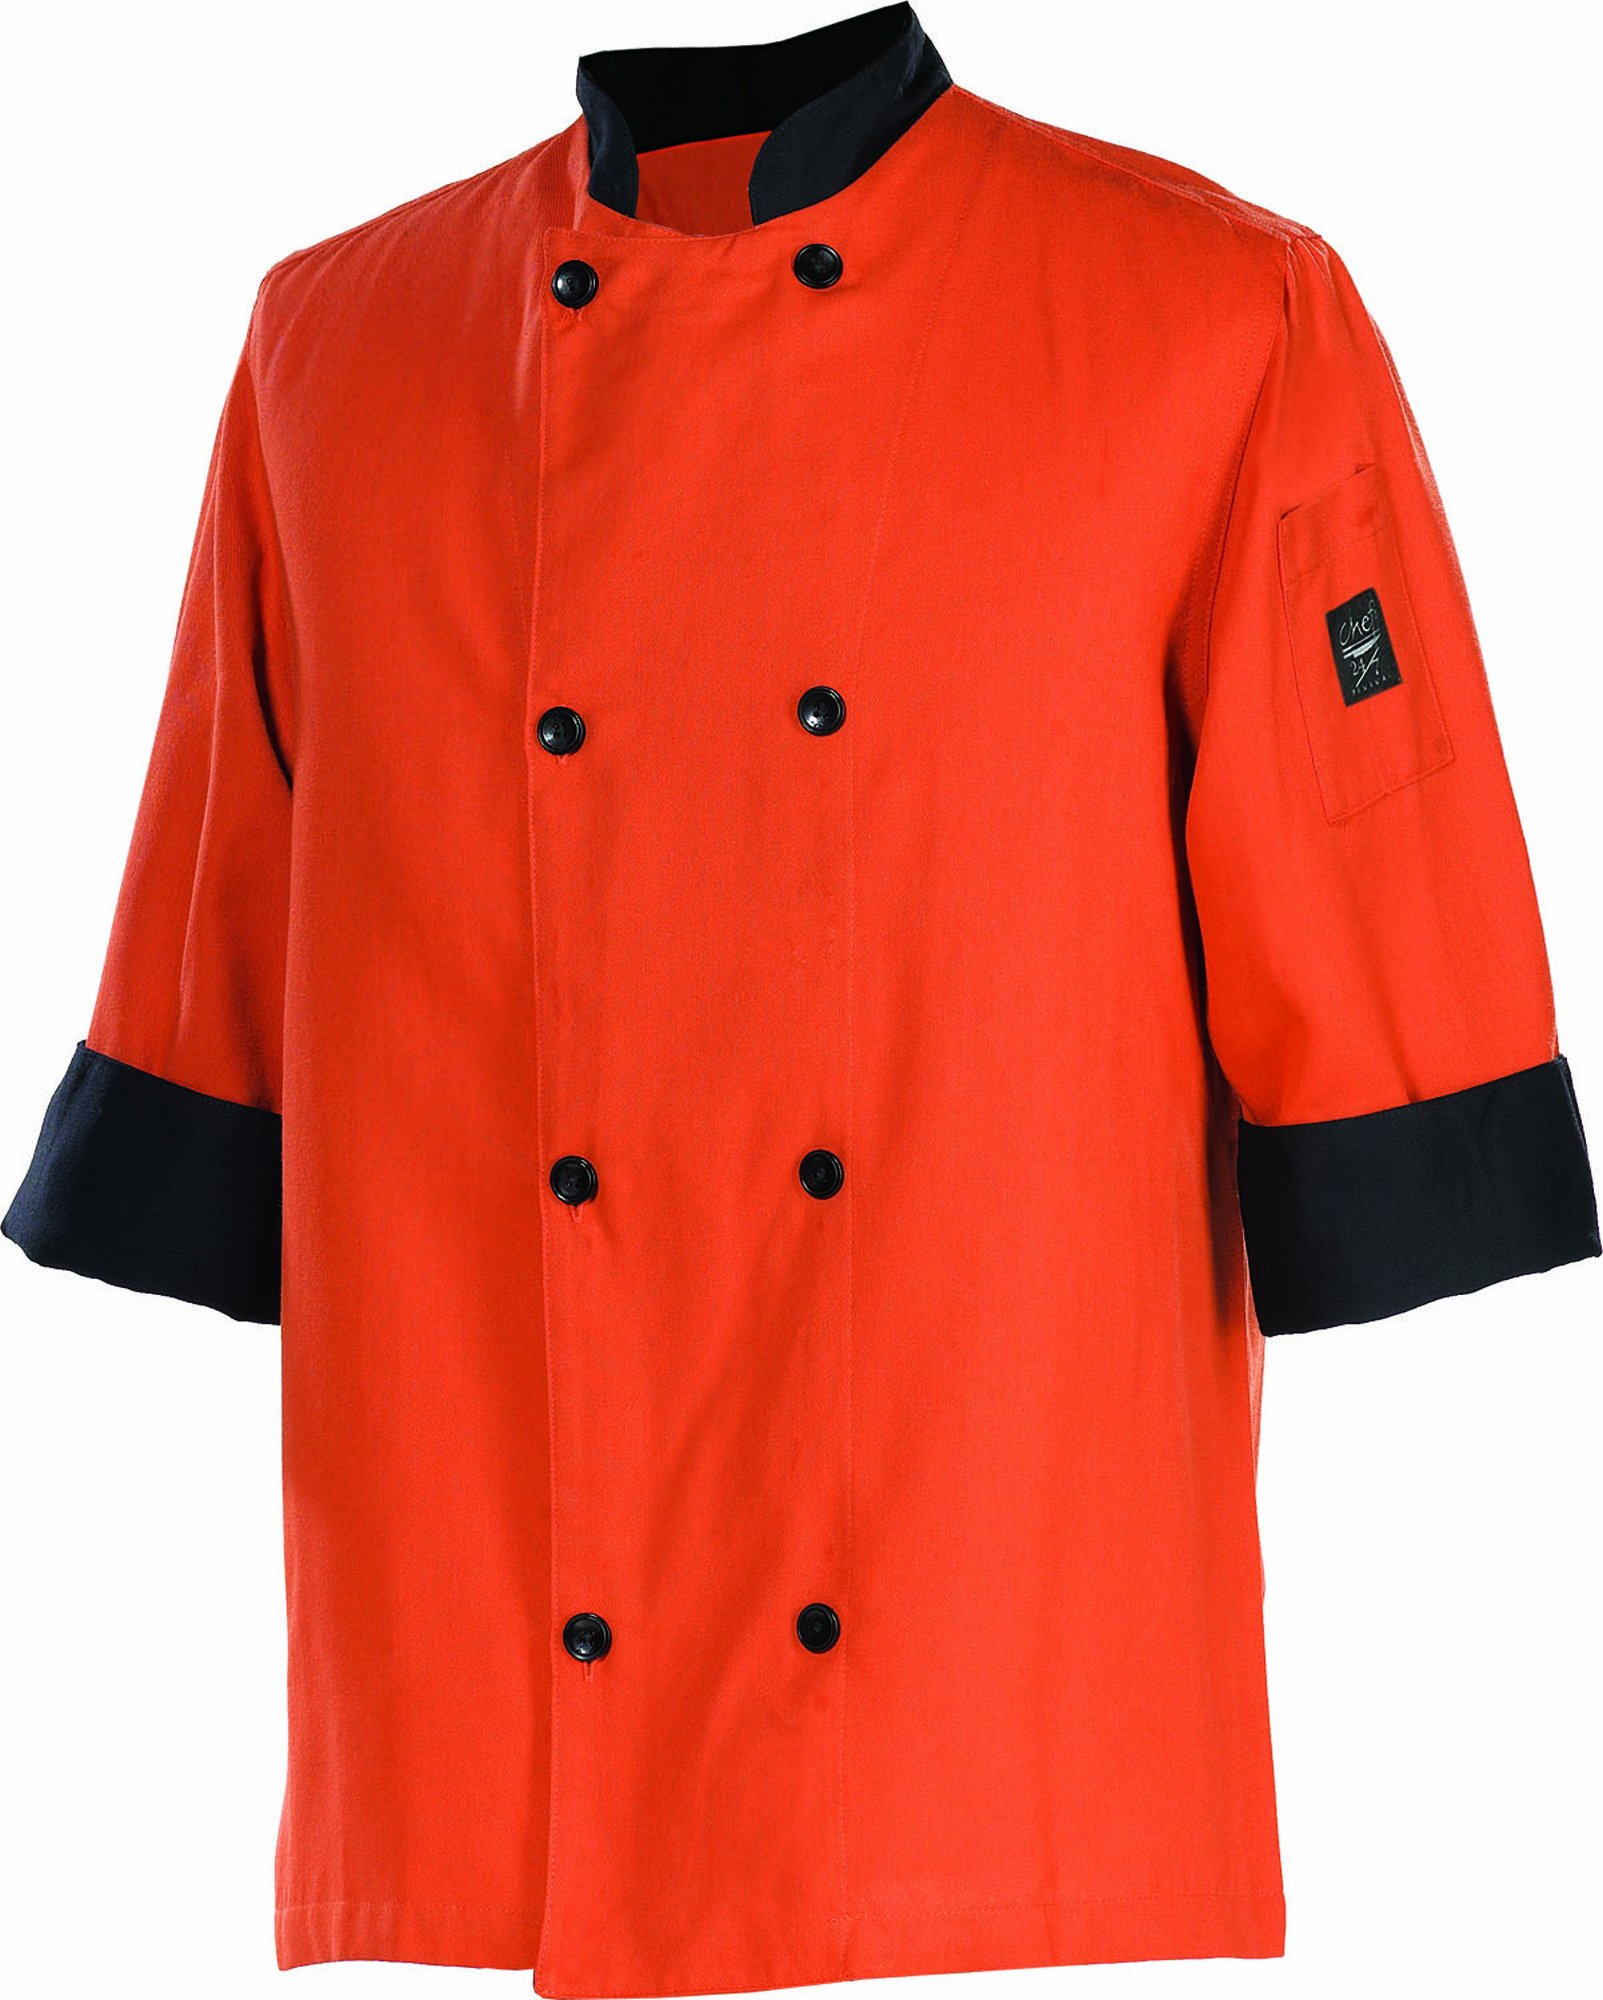 Chef Revival J134SP 24/7 Poly Cotton 3/4 Sleeve Fresh Chef Jacket with Black Trim and Flat Black Button, 5X-Large, Spice